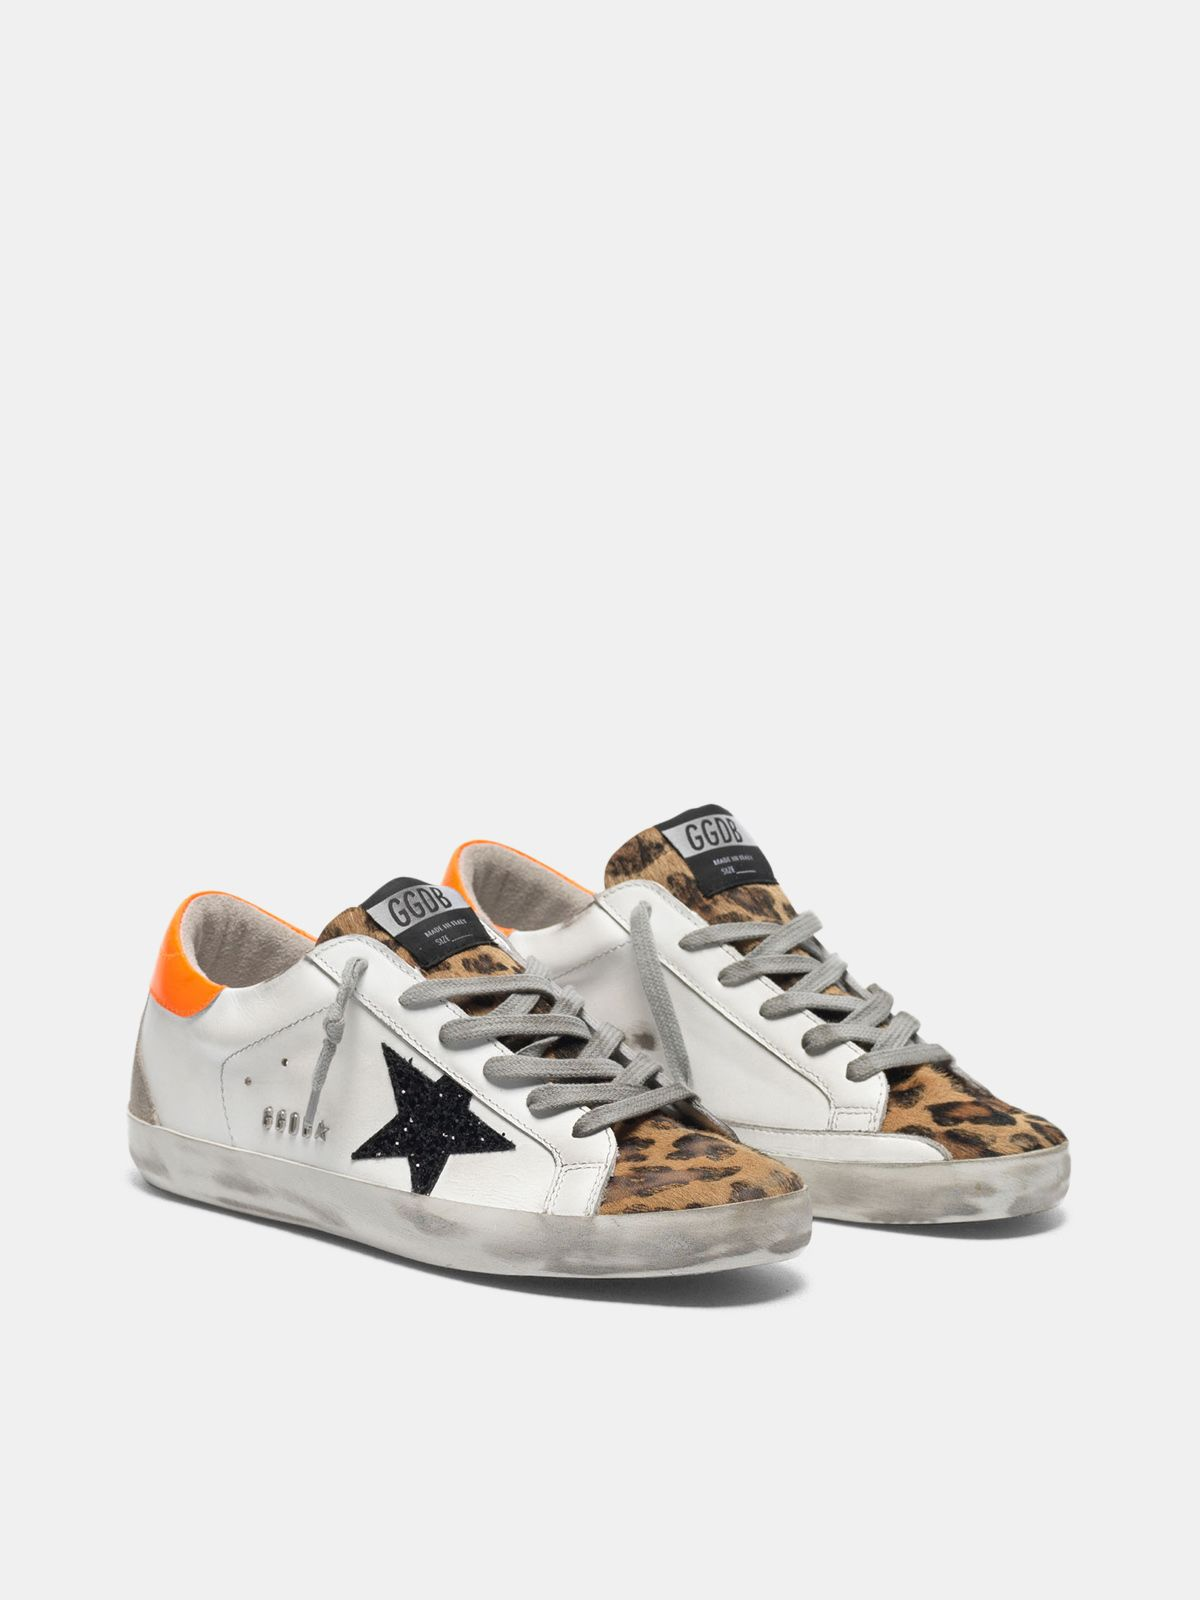 Golden Goose - Super-Star sneakers with leopard-print insert, glittery star and orange heel tab in